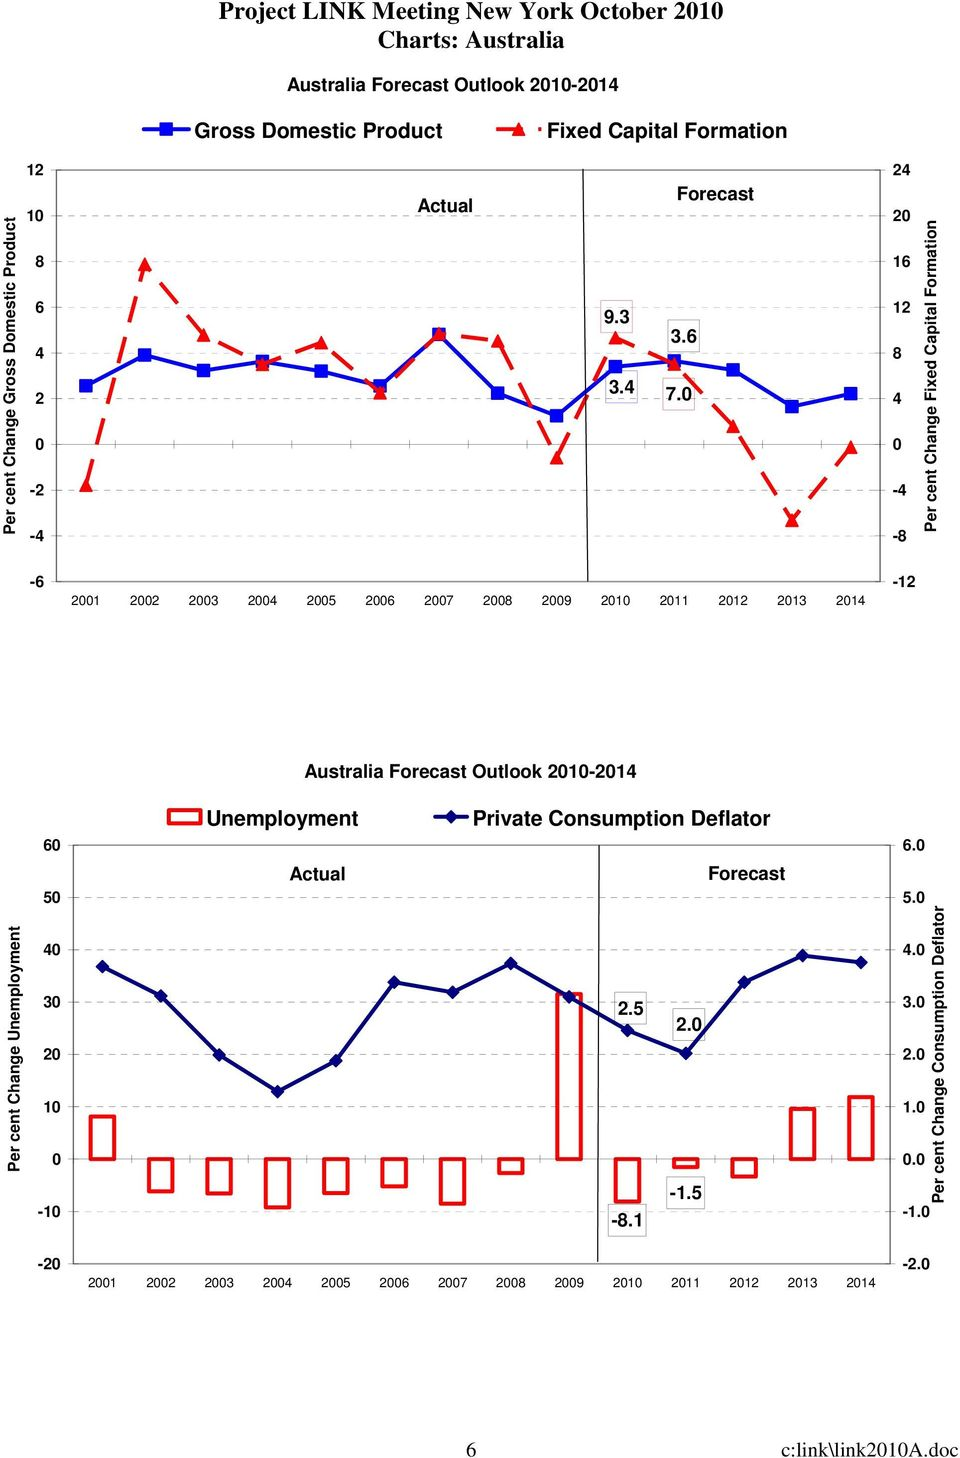 1 1 8 - -8 Fixed Capital Formation - 1 3 7 8 9 1 11 1 13 1-1 Australia Outlook 1-1 Unemployment